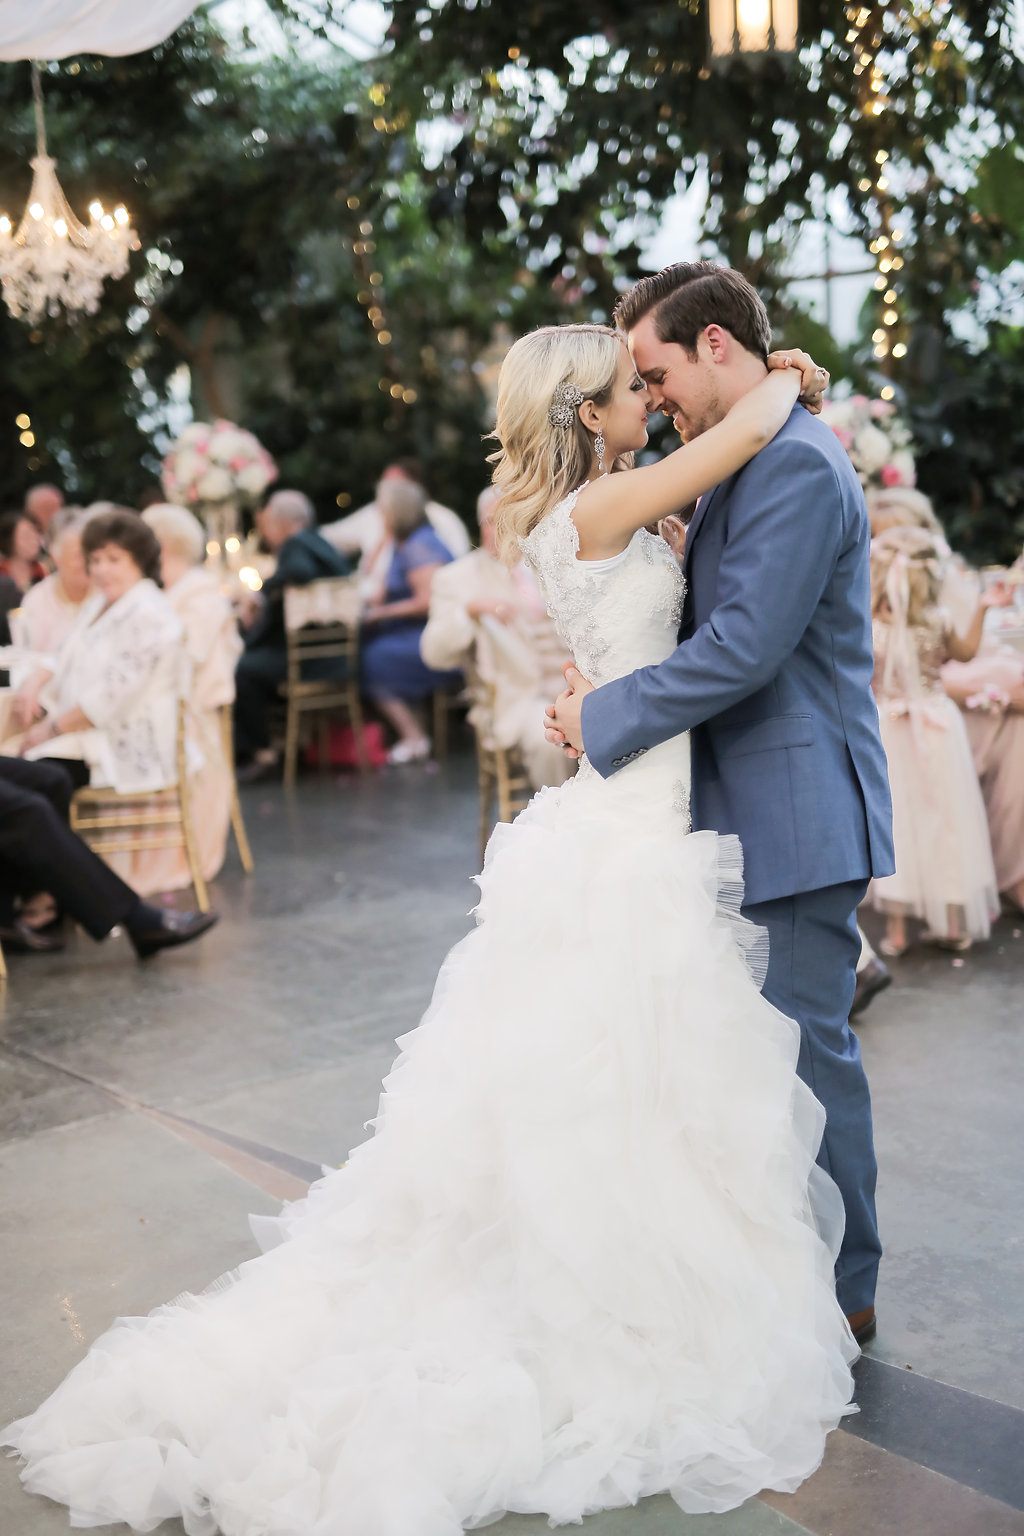 Fairytale Wedding at La Caille   La Caille Wedding Wedding   Salt Lake City Wedding   Blush and Gold   Michelle Leo Events   Utah Event Planner and Designer   Pepper Nix Photography